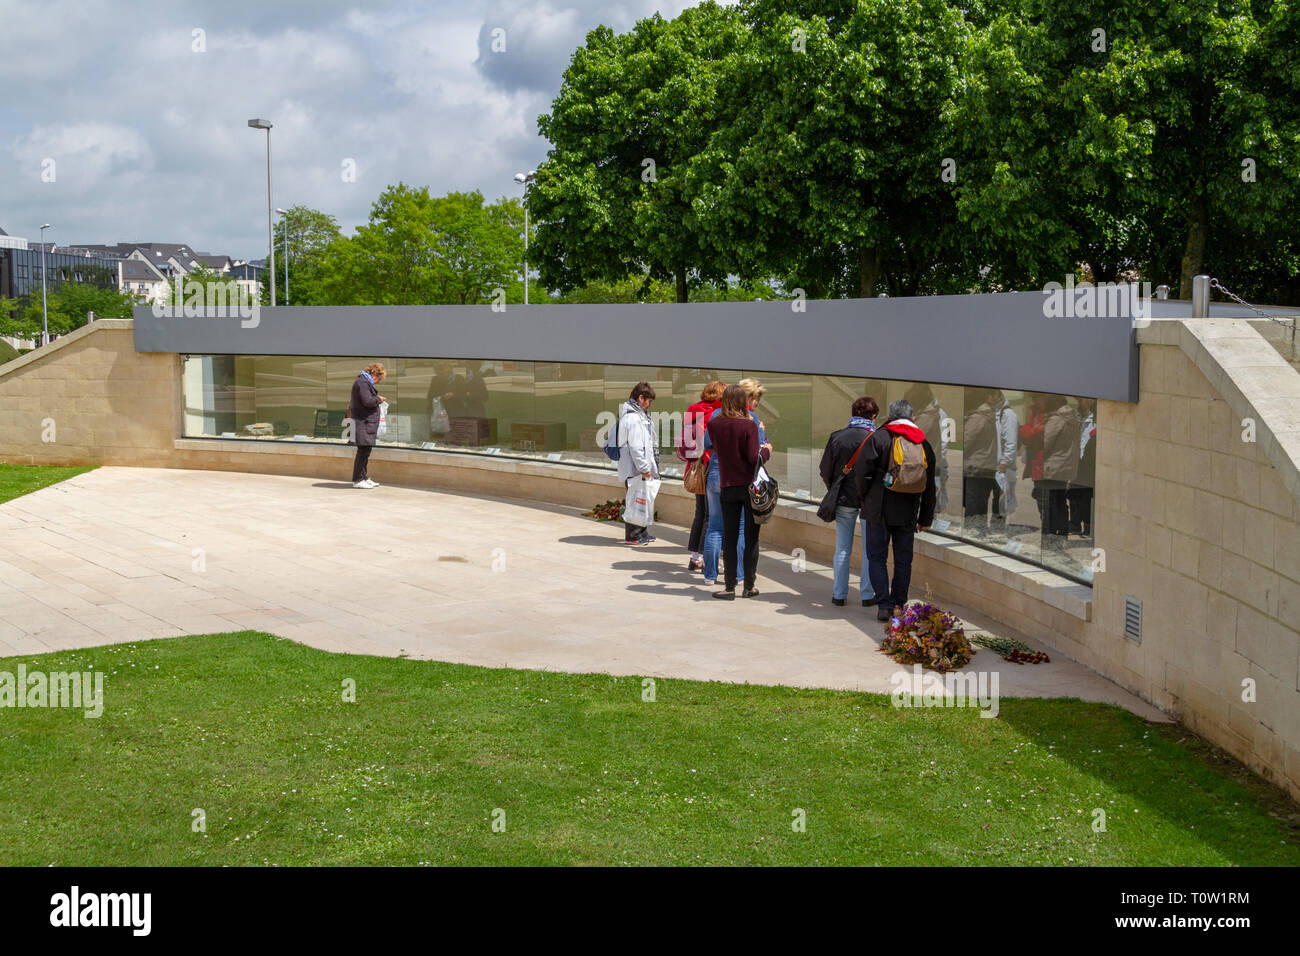 International Memorial Stones outside the Mémorial de Caen, Normandy, France. - Stock Image